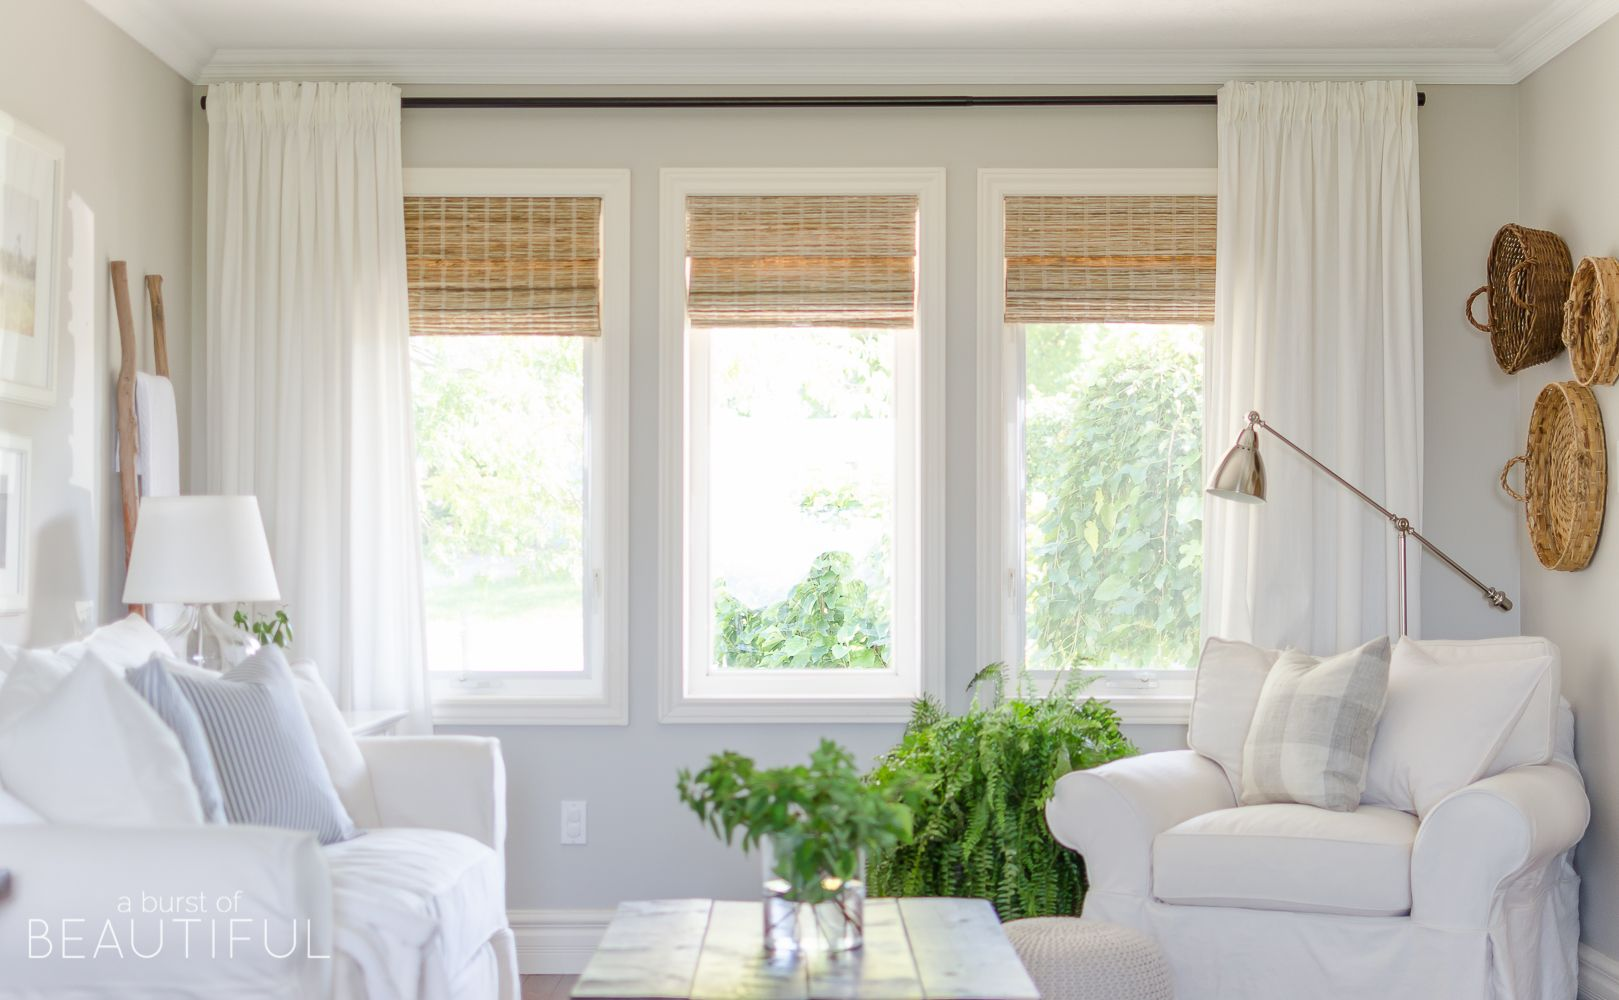 Woven Wood Shades In Our Living Room Nick Alicia Window Treatments Living Room Farm House Living Room Curtains Living Room